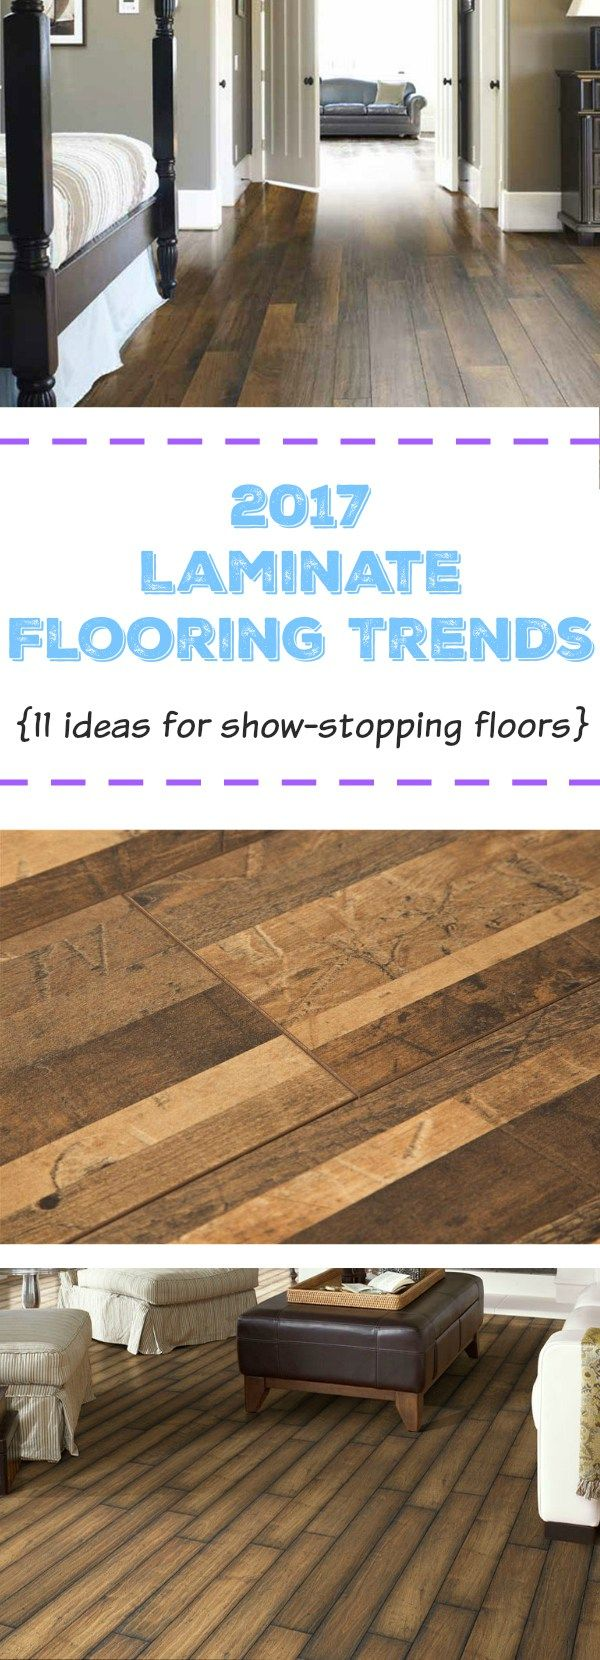 2017 Laminate Flooring Trends 11 Ideas for Show Stopping